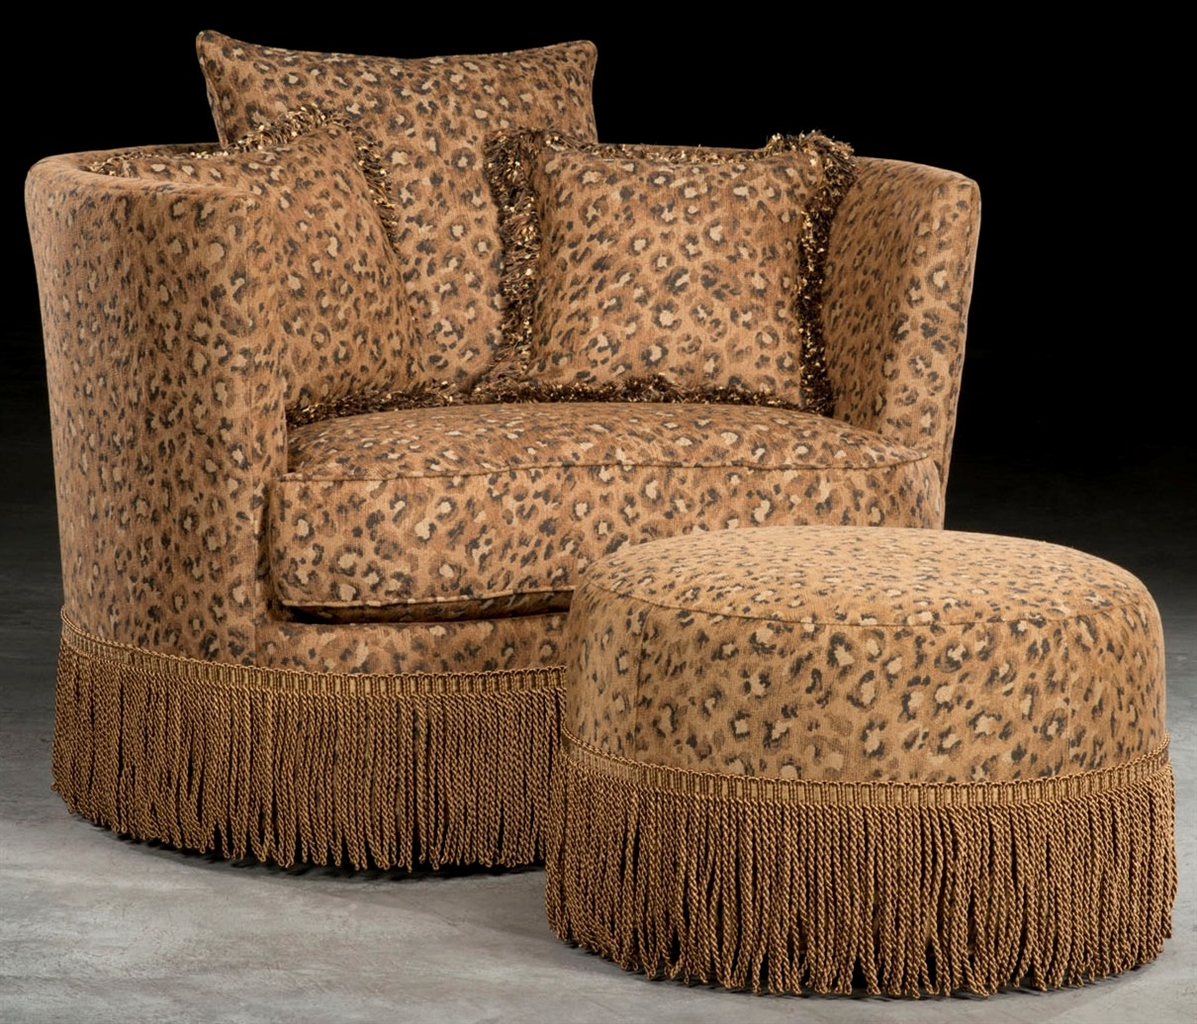 Leopard Print Swivel Barrel Chair With Ottoman. on leopard print living room furniture, leopard chair, beauty furniture home, paisley furniture home, leopard reclining sofa, leopard print furniture and accessories, zebra furniture home, leopard print retro furniture, animal print for the home, beach furniture home,